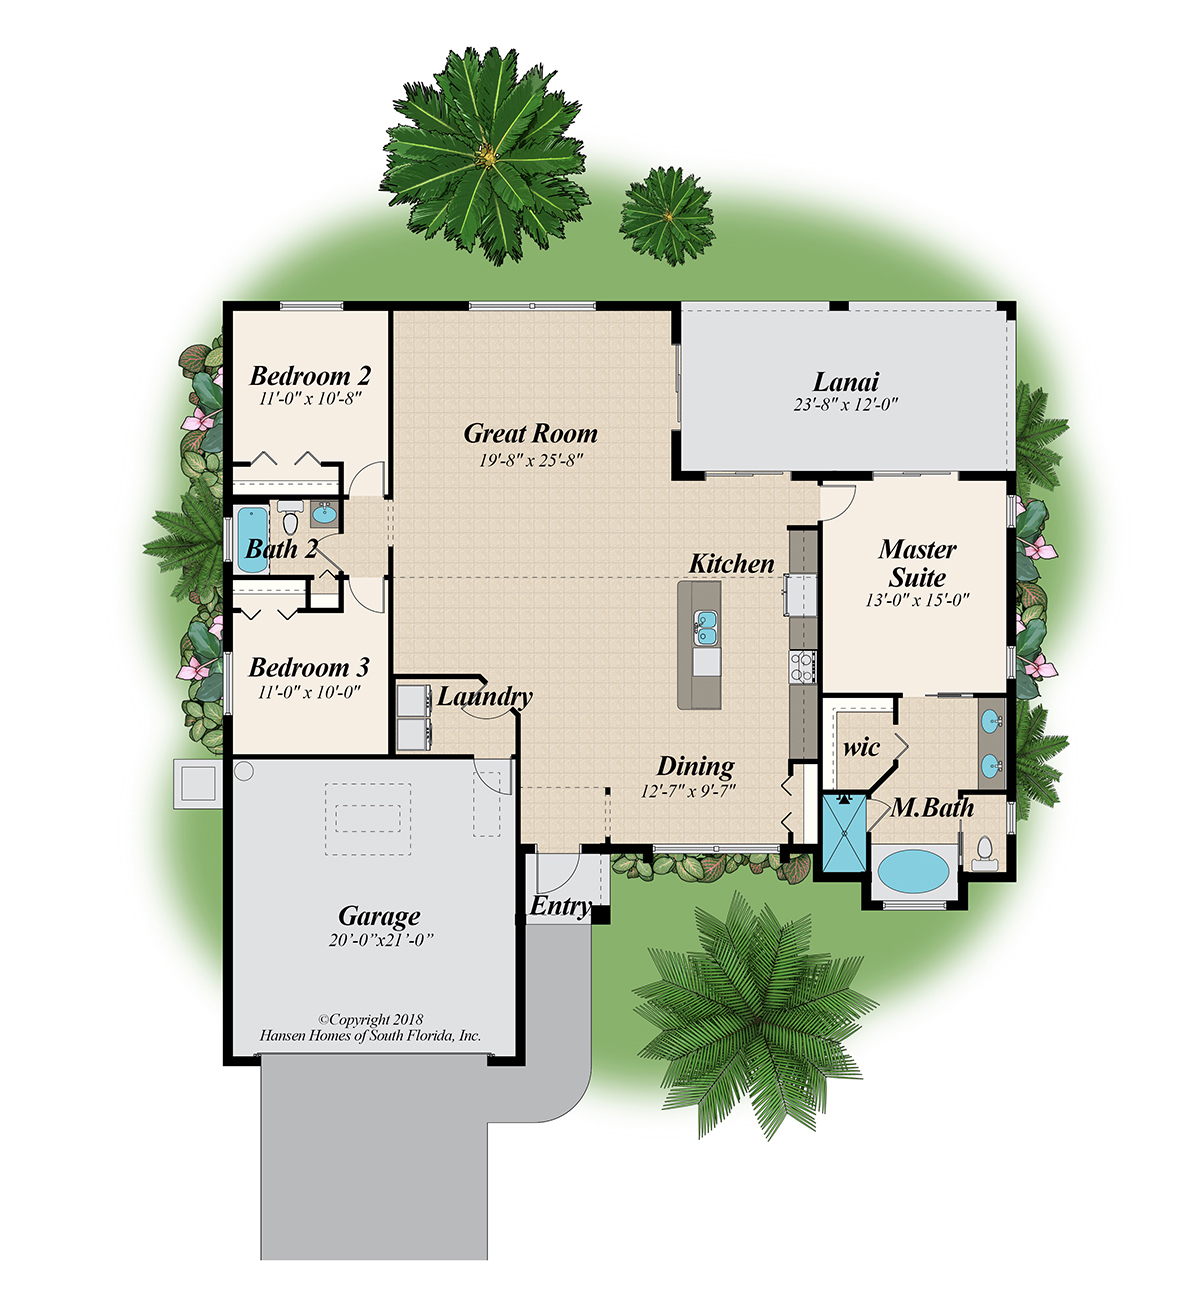 The More Home Plan Floor Plans